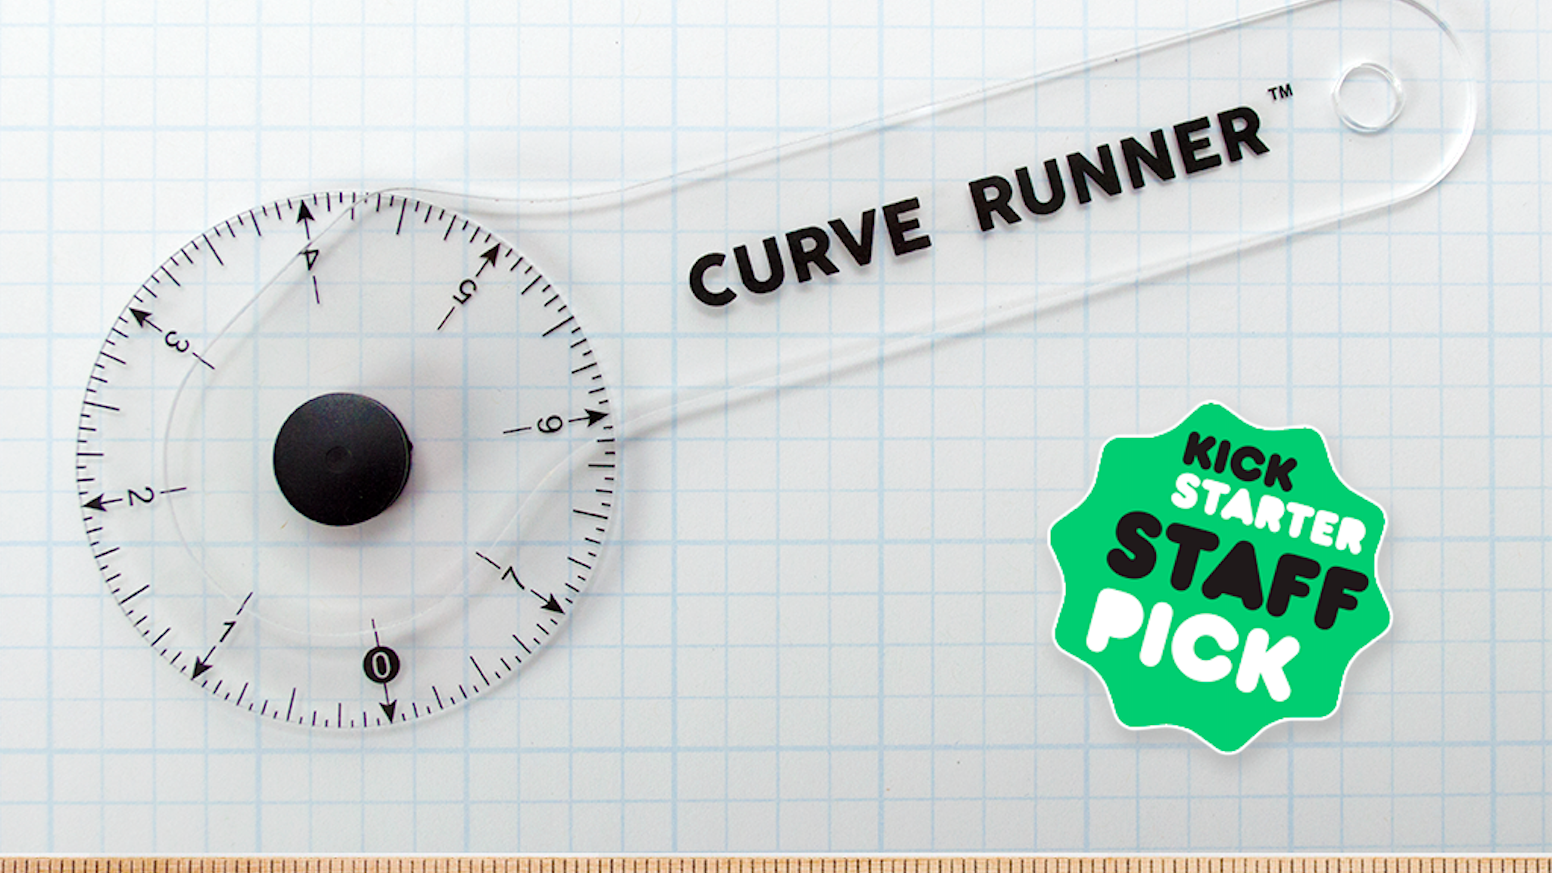 Super fast and accurate!  Clear acrylic lets you see through the ruler, never leaving your line out of sight.